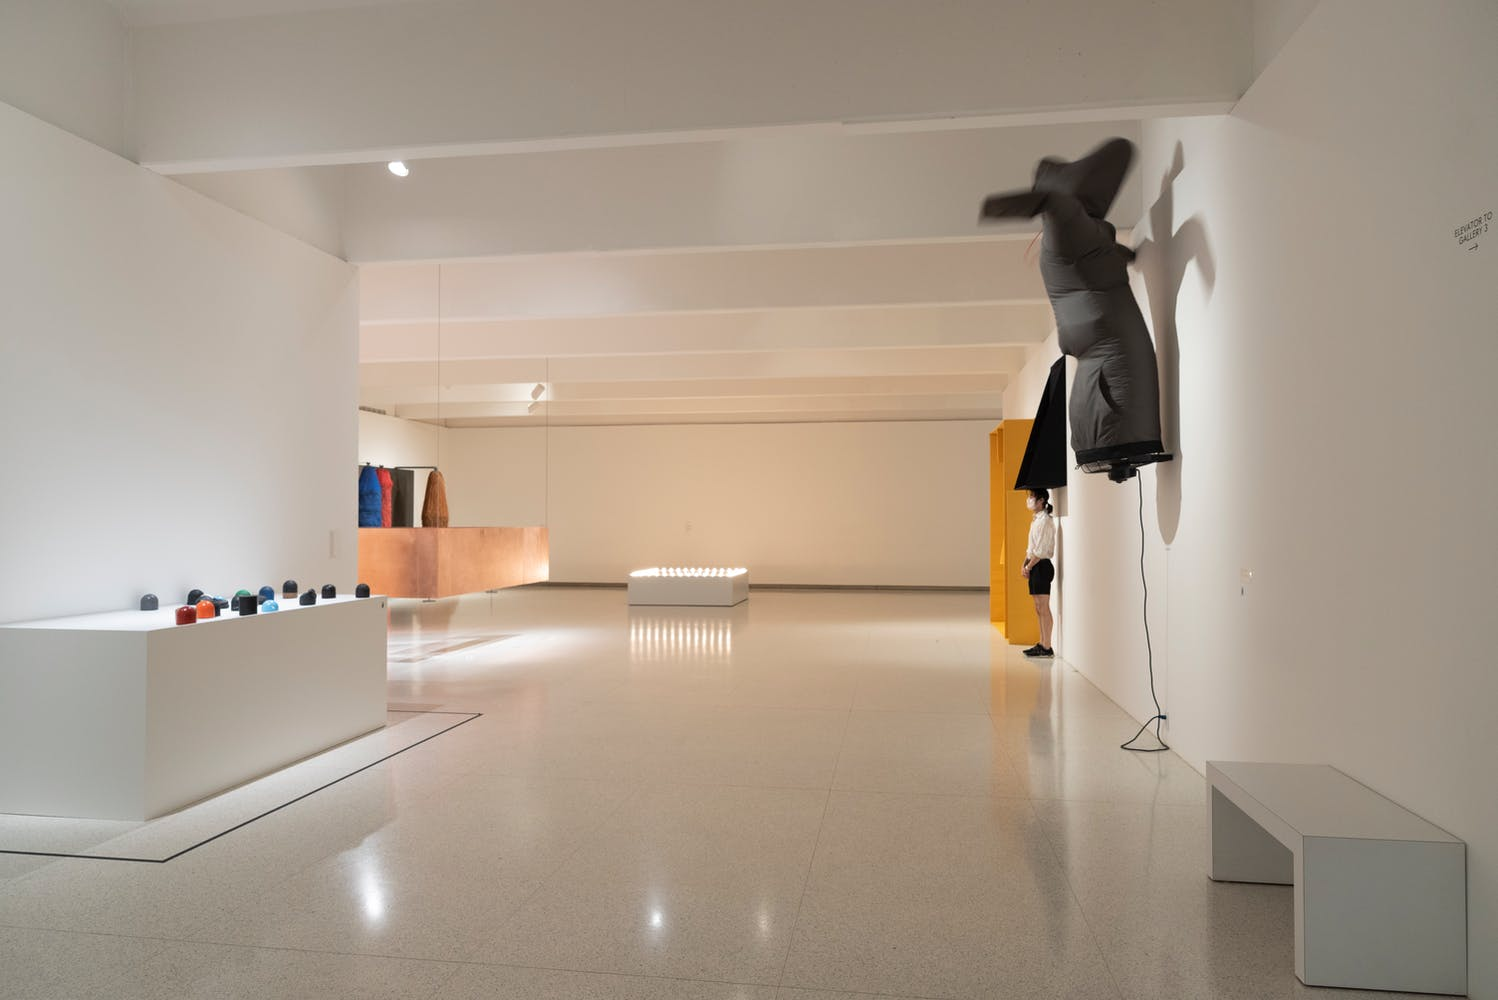 Gallery view with various sculptural objects